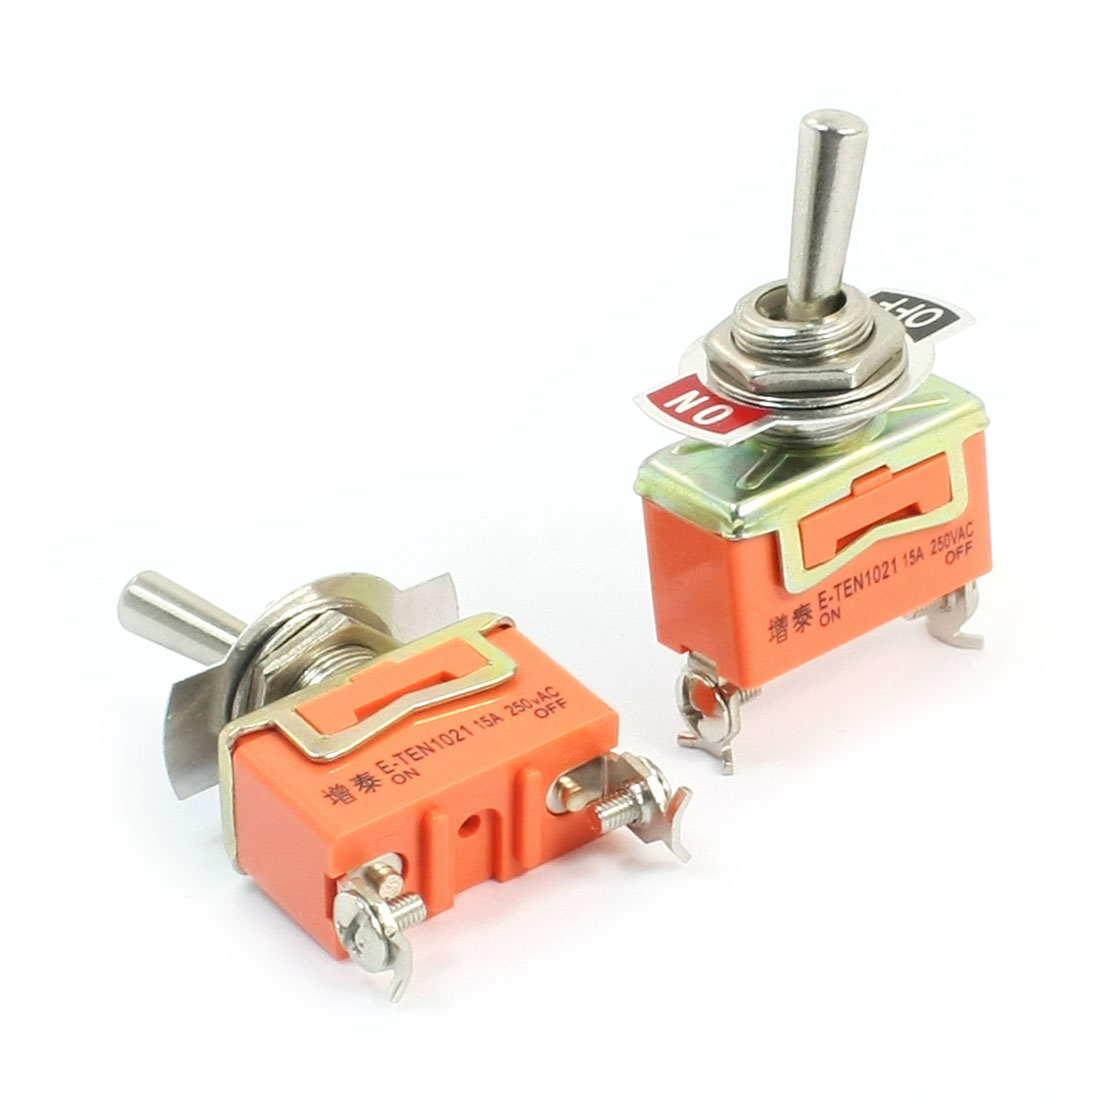 2Pcs AC 250V 15A 1P1T 2 Positions Power Control Toggle Switch for Auto Motor